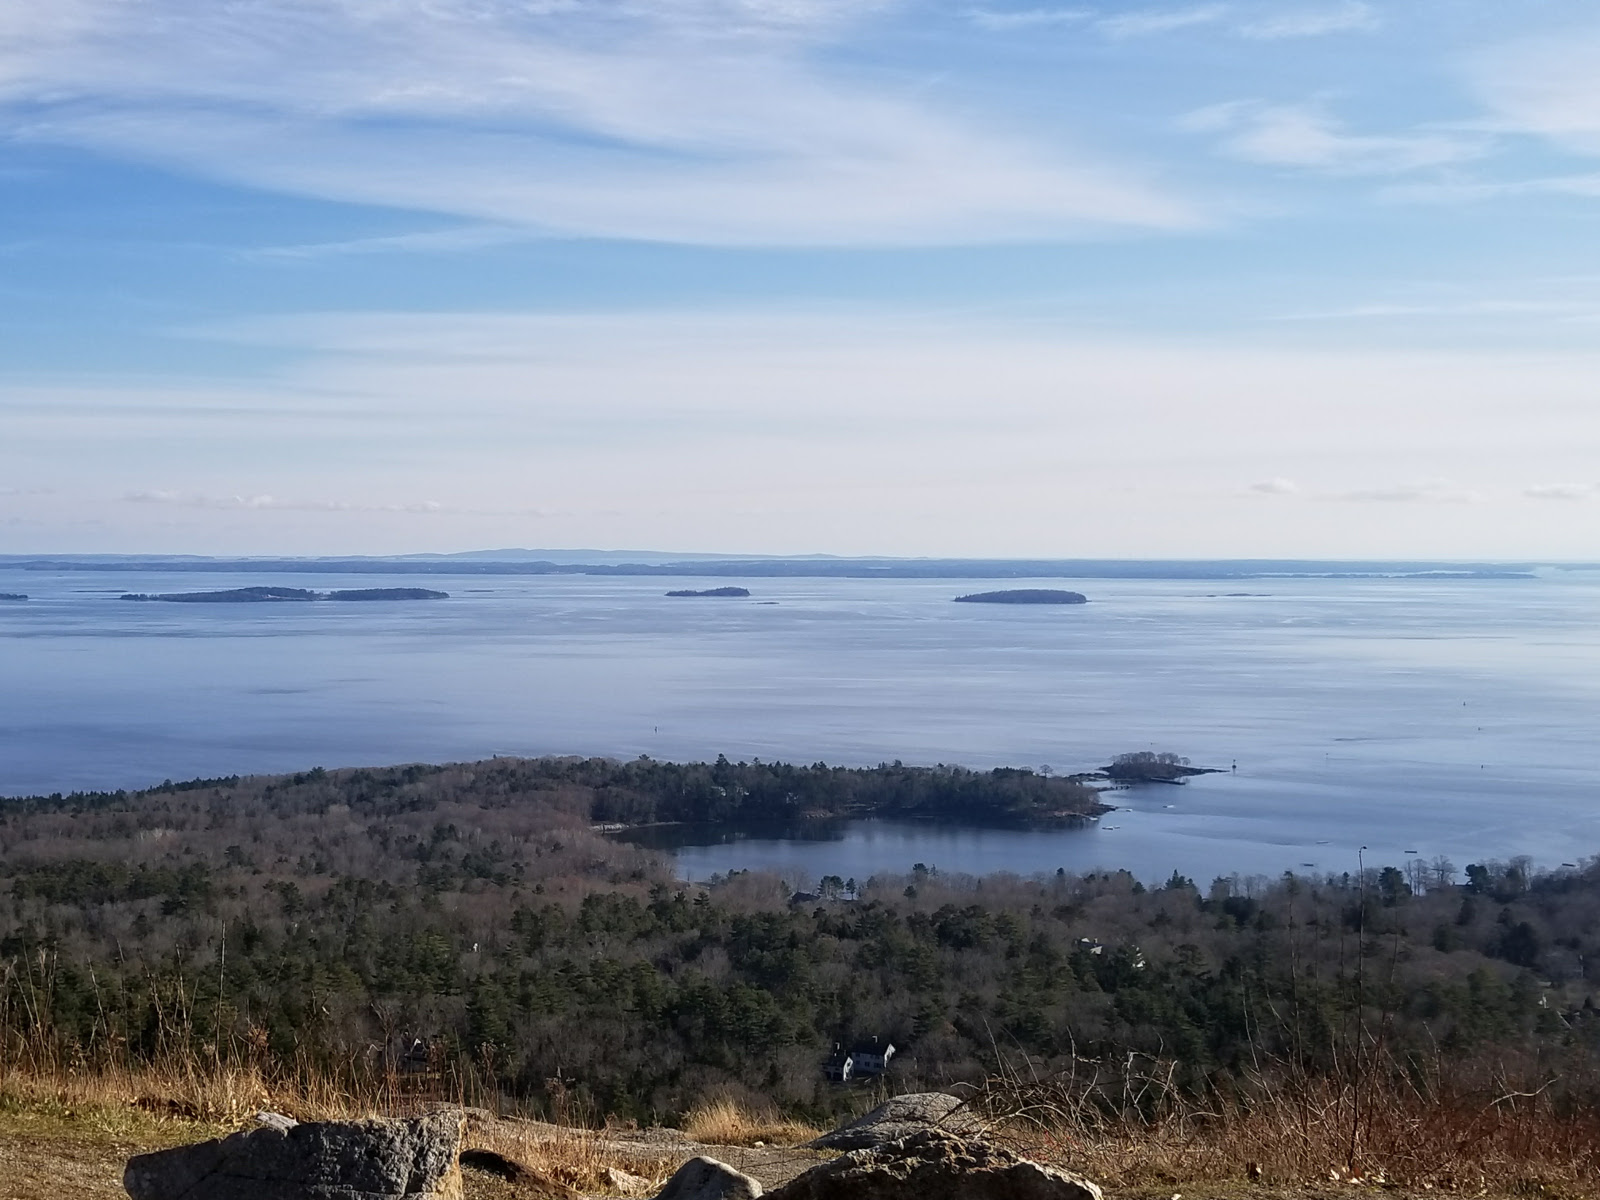 View of Penobscot Bay from Mt. Battie in December